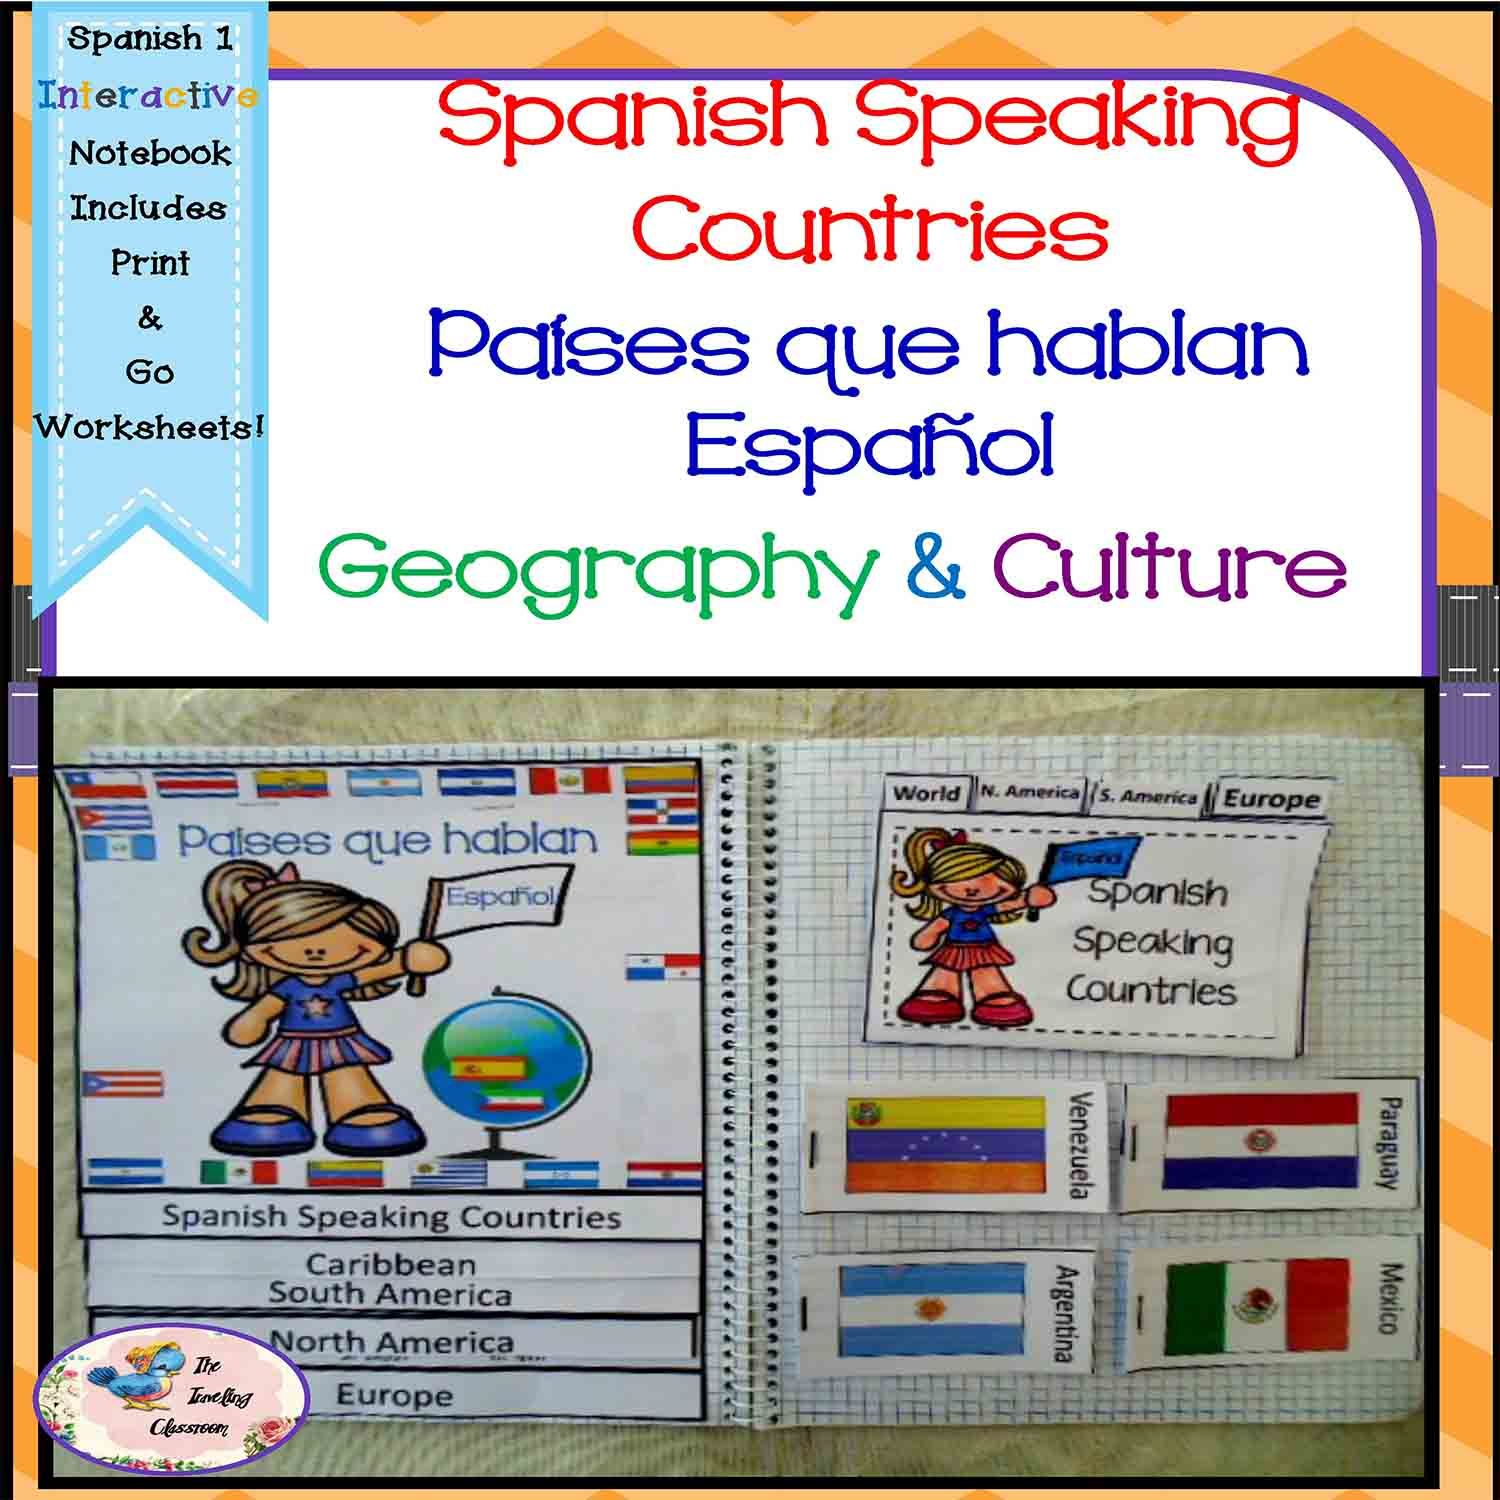 Spanish Speaking Countries With Images